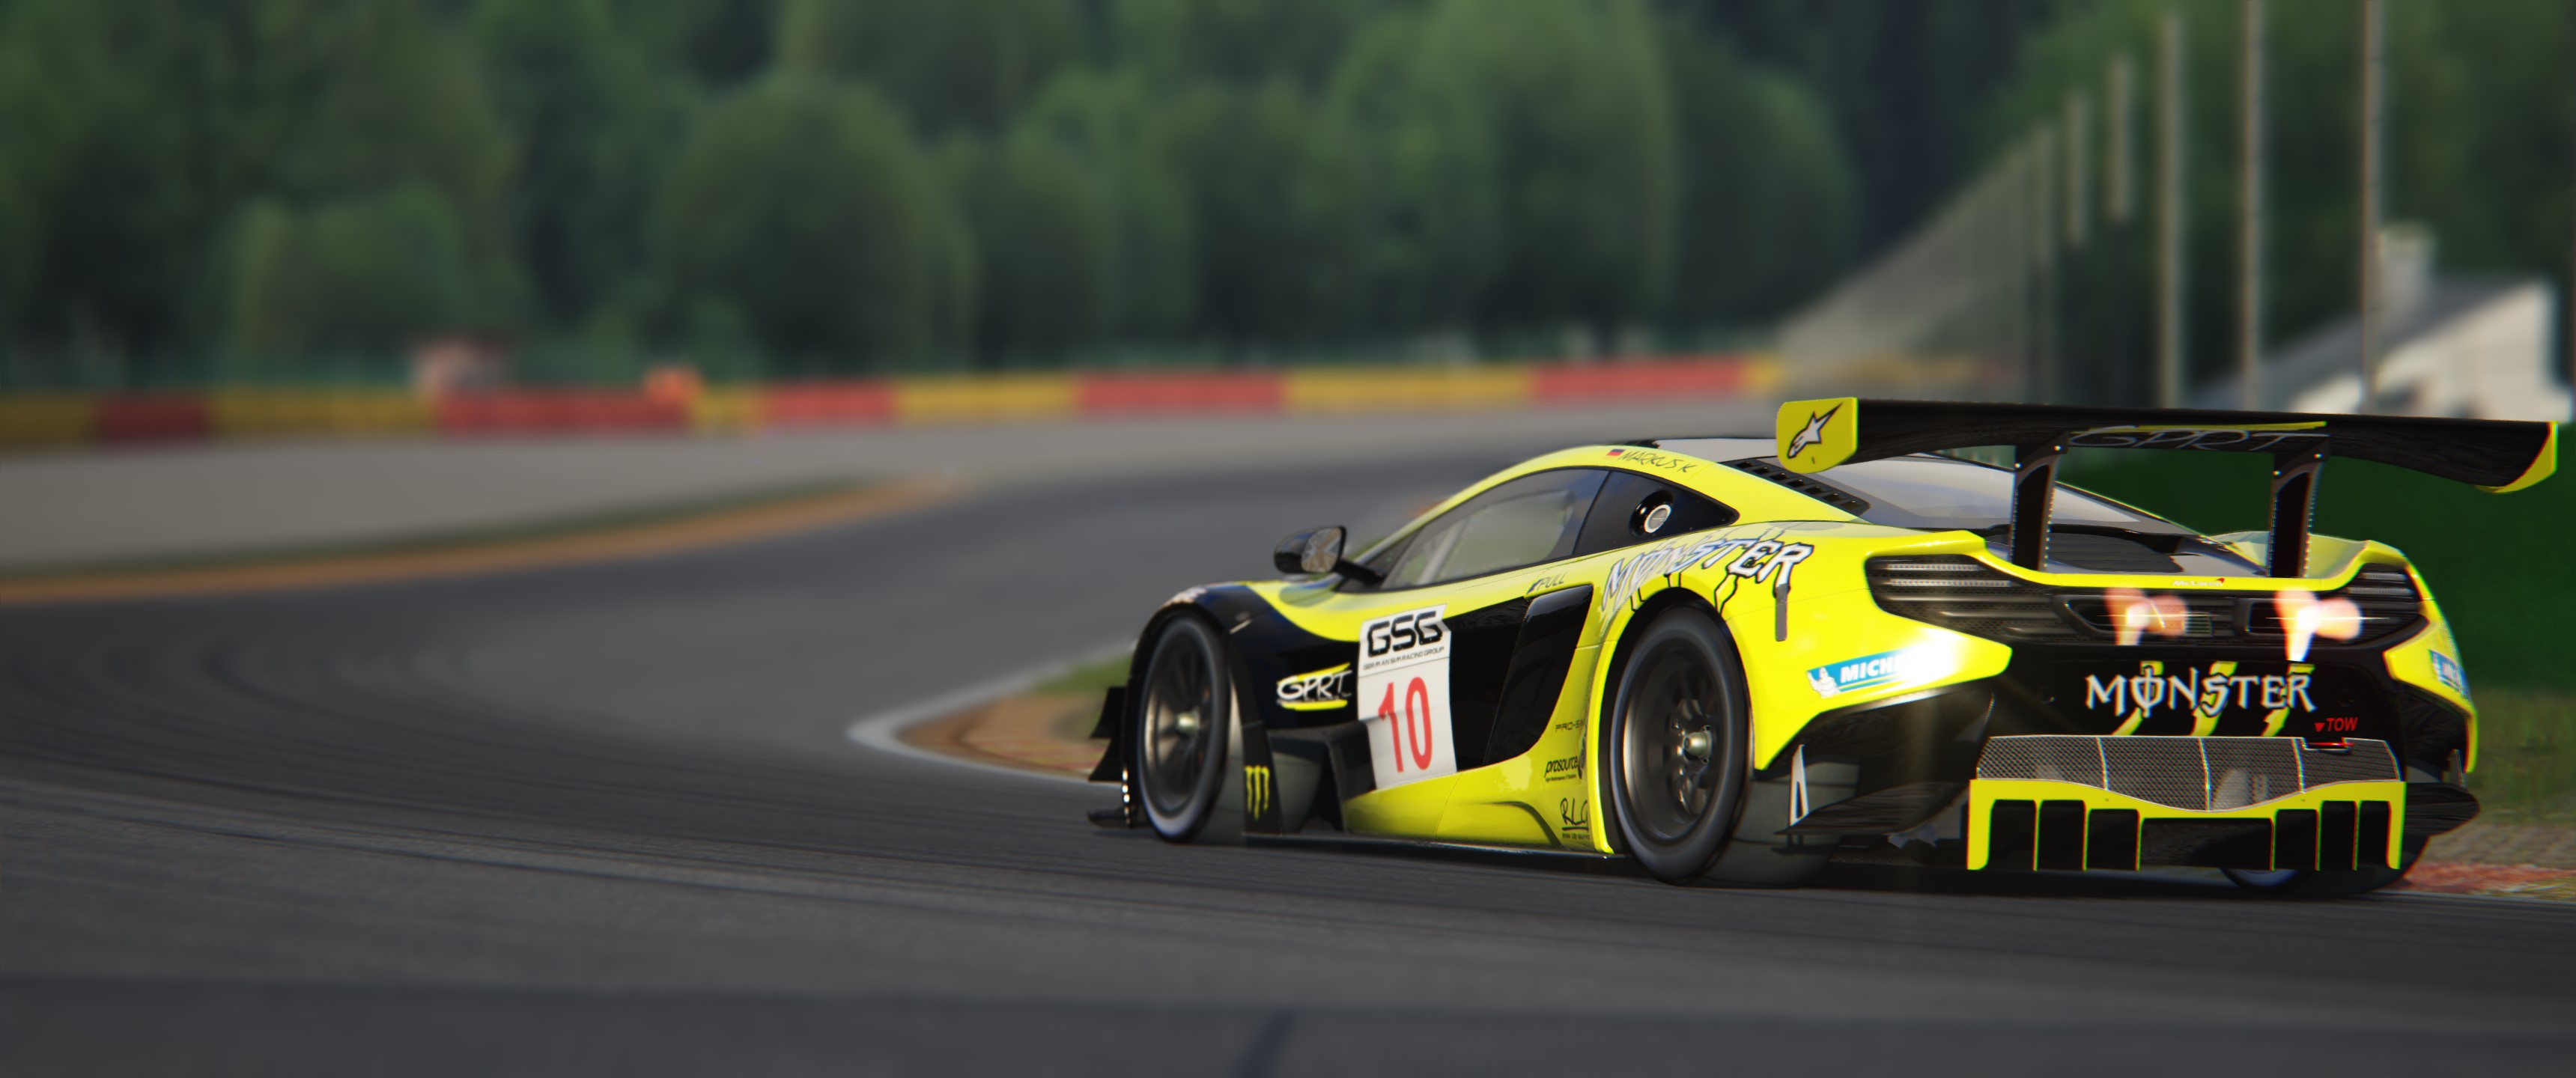 Screenshot_ks_mclaren_650_gt3_spa_15-3-116-18-55-57.jpg